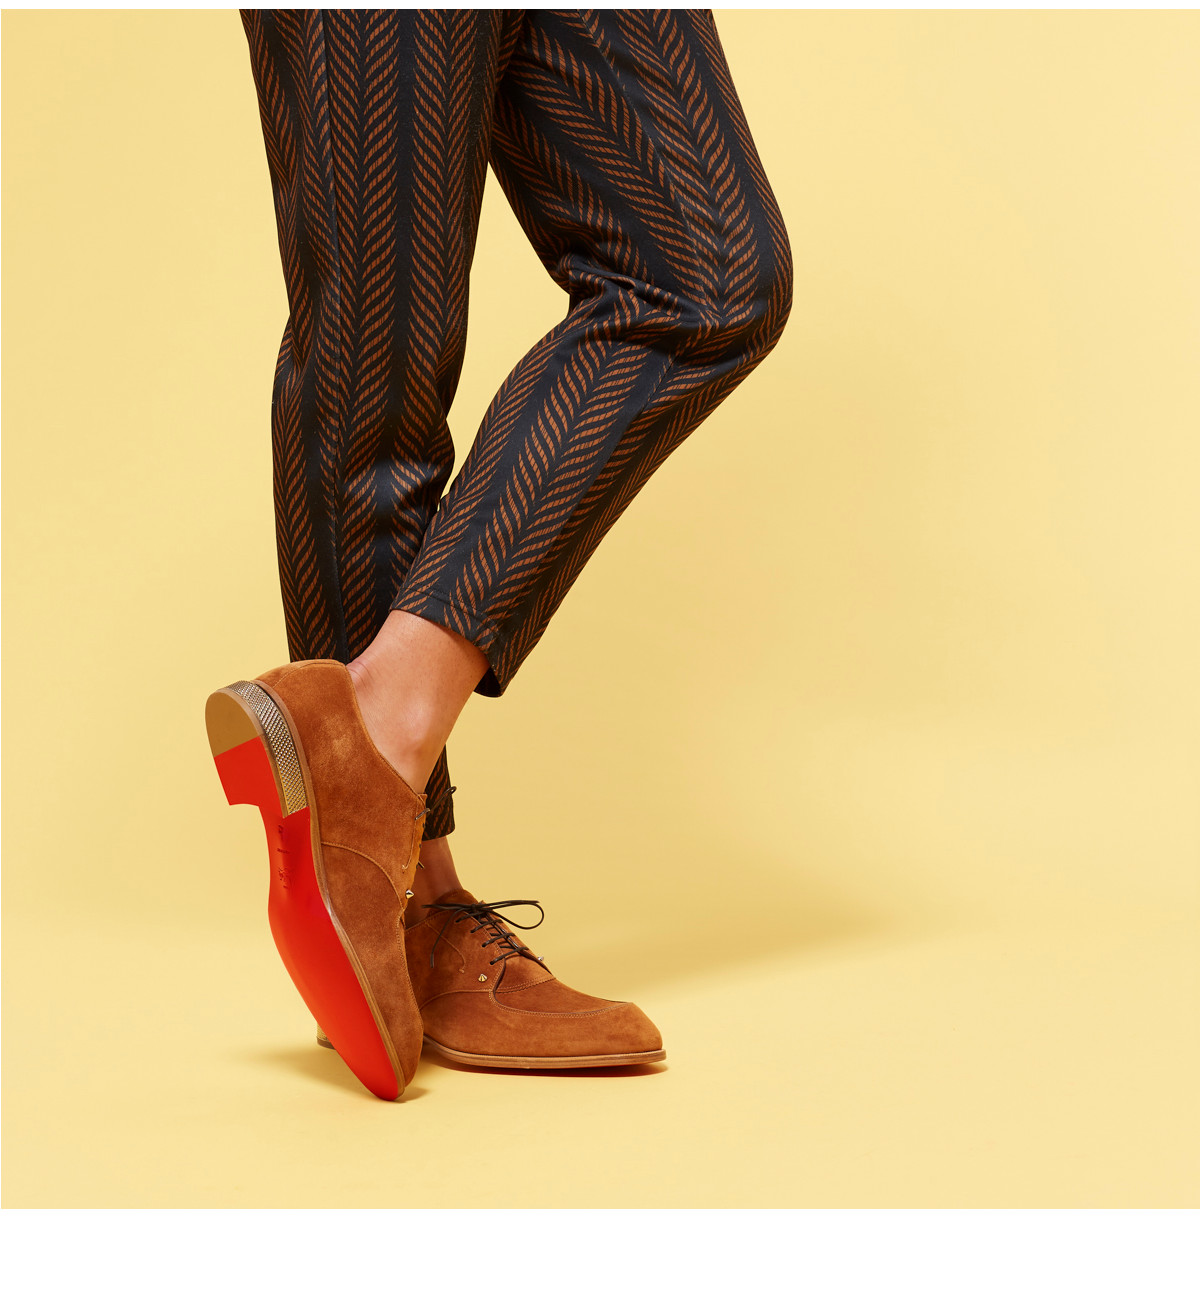 Christian Louboutin United States Online Boutique D Island Shoes Casual Zappato England Suede Dark Brown Men New Arrivals